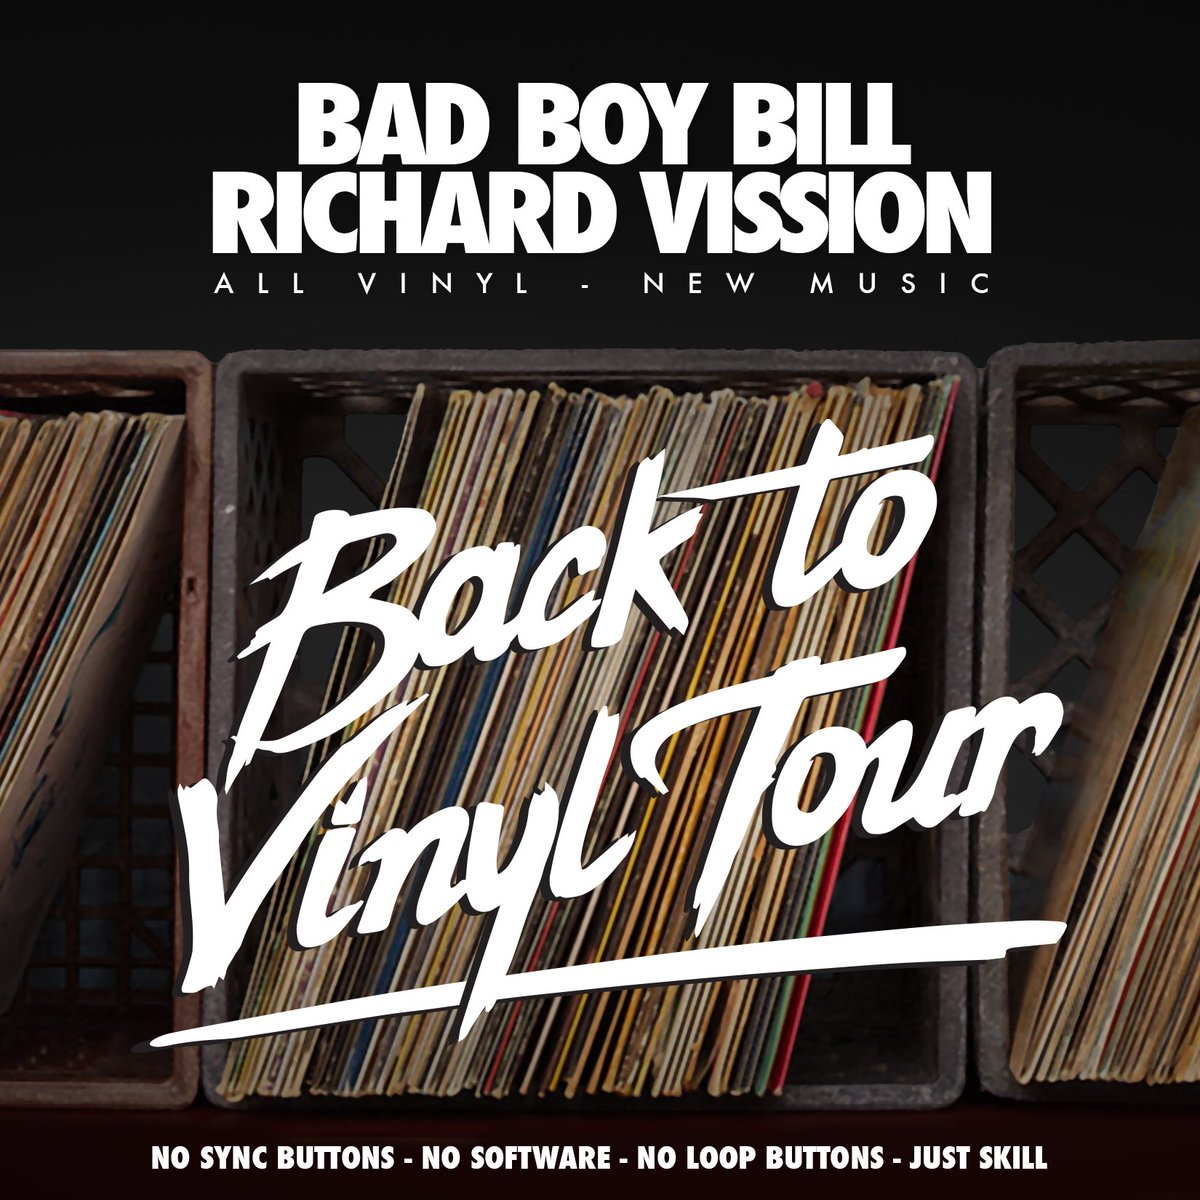 .@RichardVission & I decided to have fun this summer & put some of the challenge back into DJ'ing #BackToVinylTour https://t.co/9iKNKET1kZ